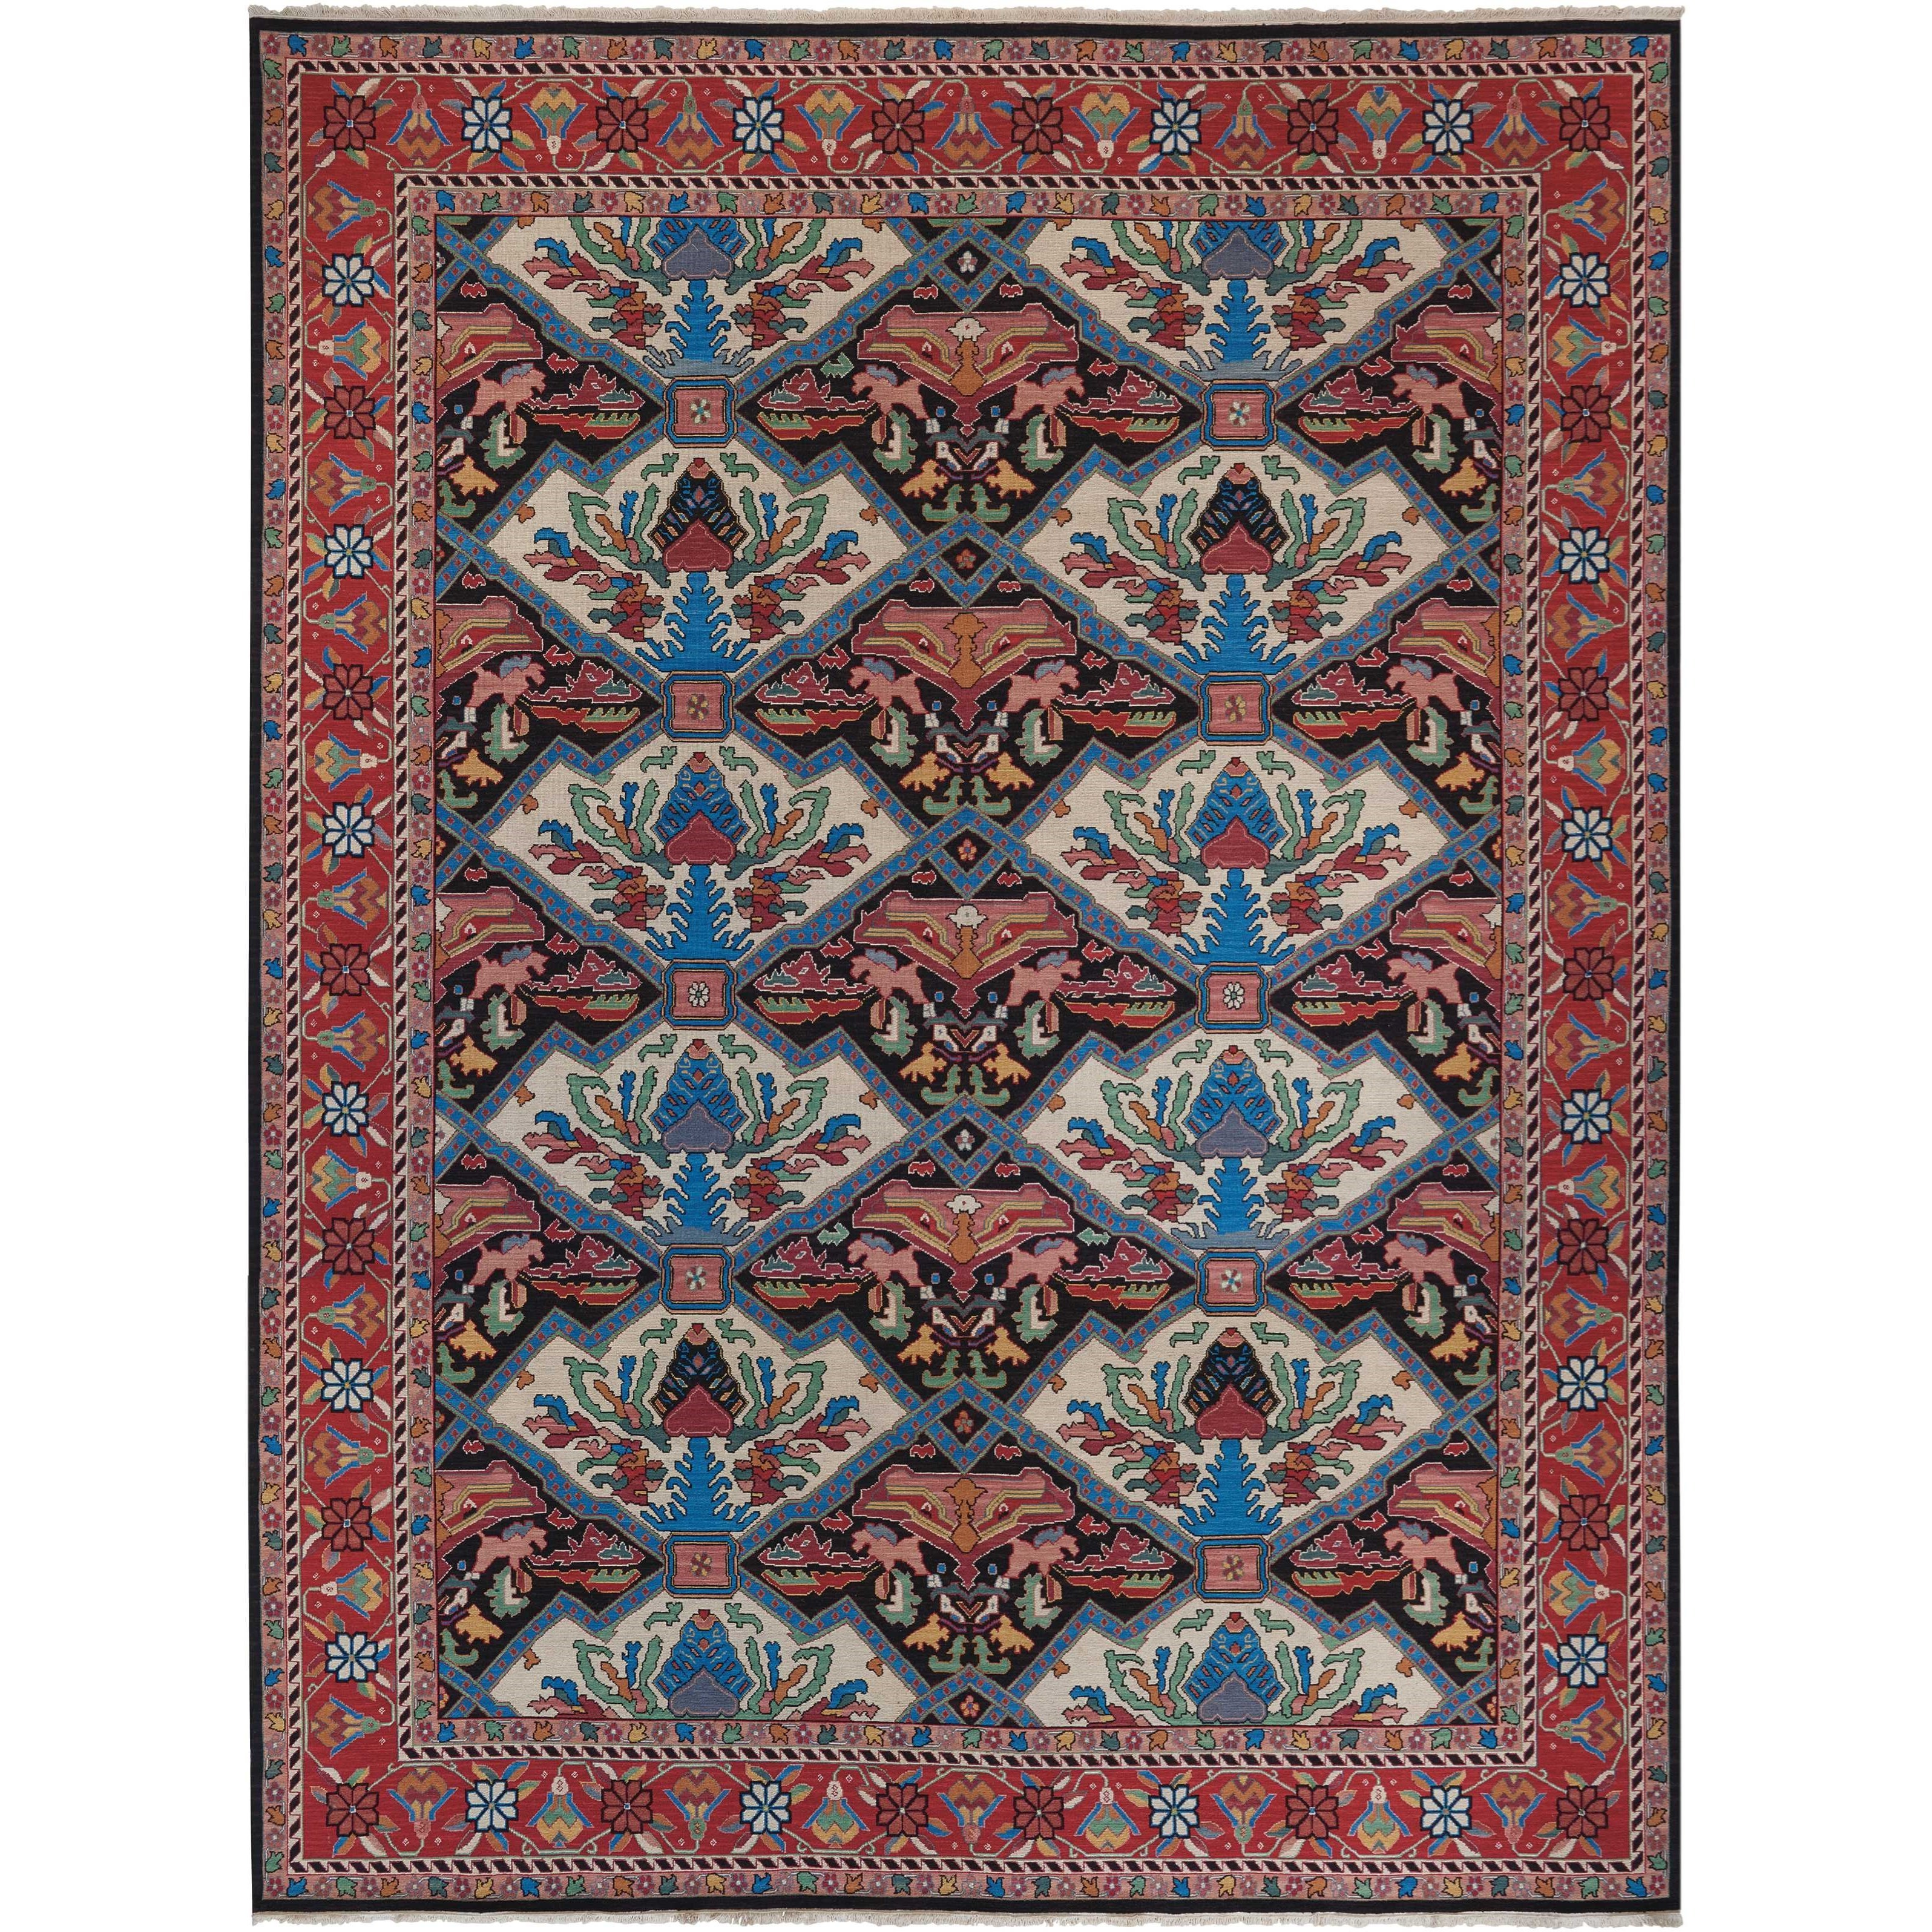 12' x 15' Multicolor Rectangle Rug